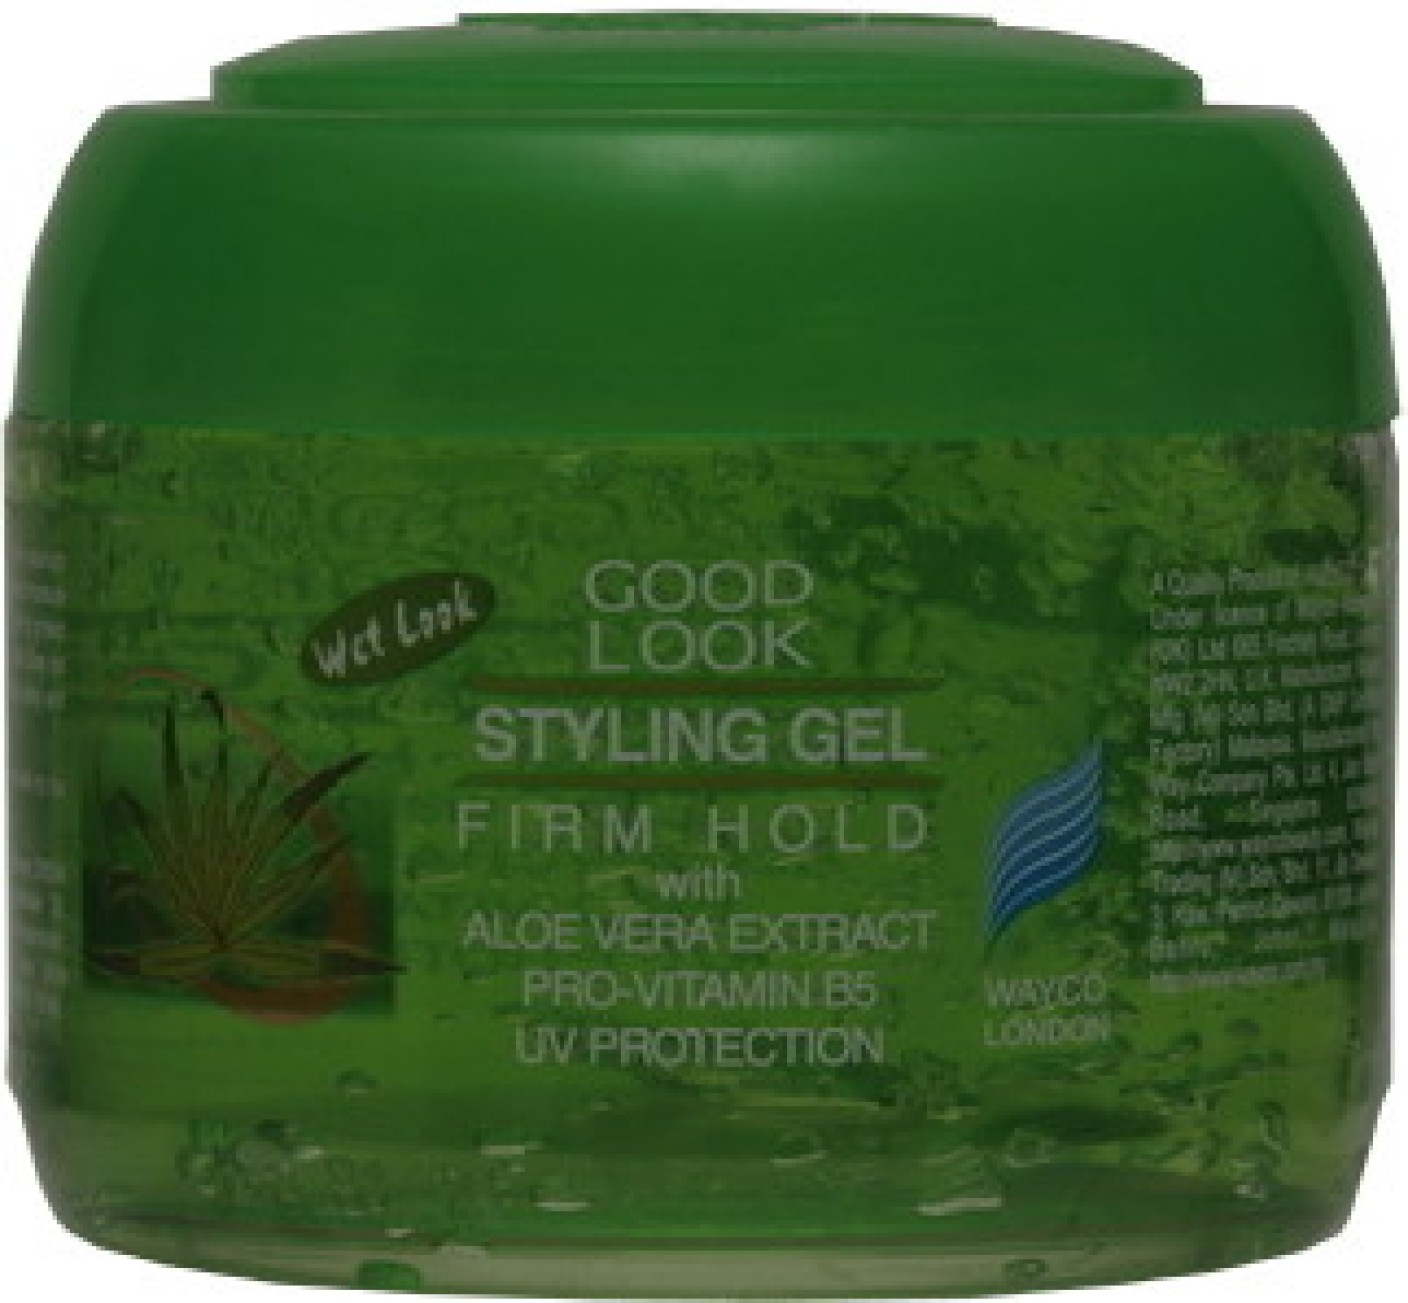 aloe vera gel for hair styling look styling gel firm hold with aloe vera extract 9912